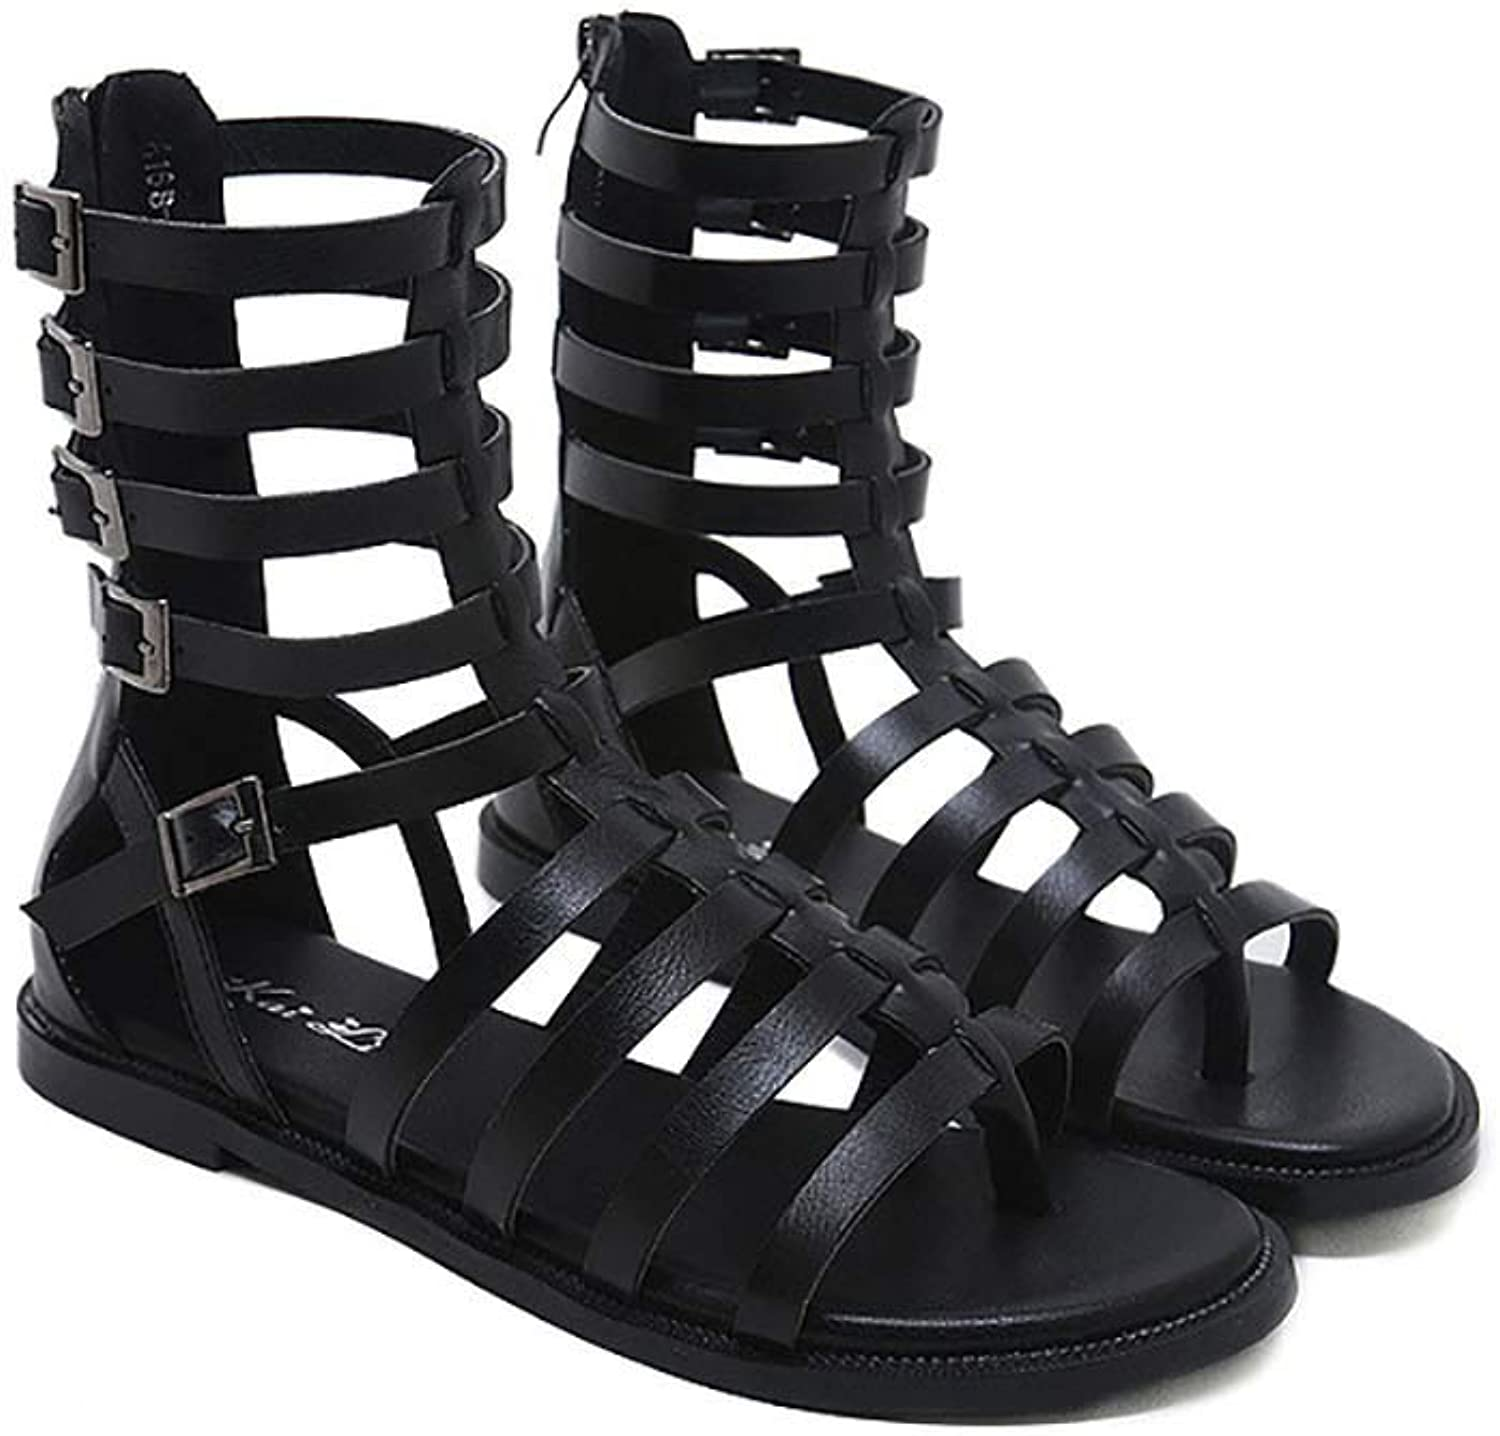 Women's Open Toe Lace Up Sandals, Strappy Sandals Openwork Sandals Women's Open Toe Lace Up Sandals Ladies Roman Lace Up Sandals Women's,Black,40